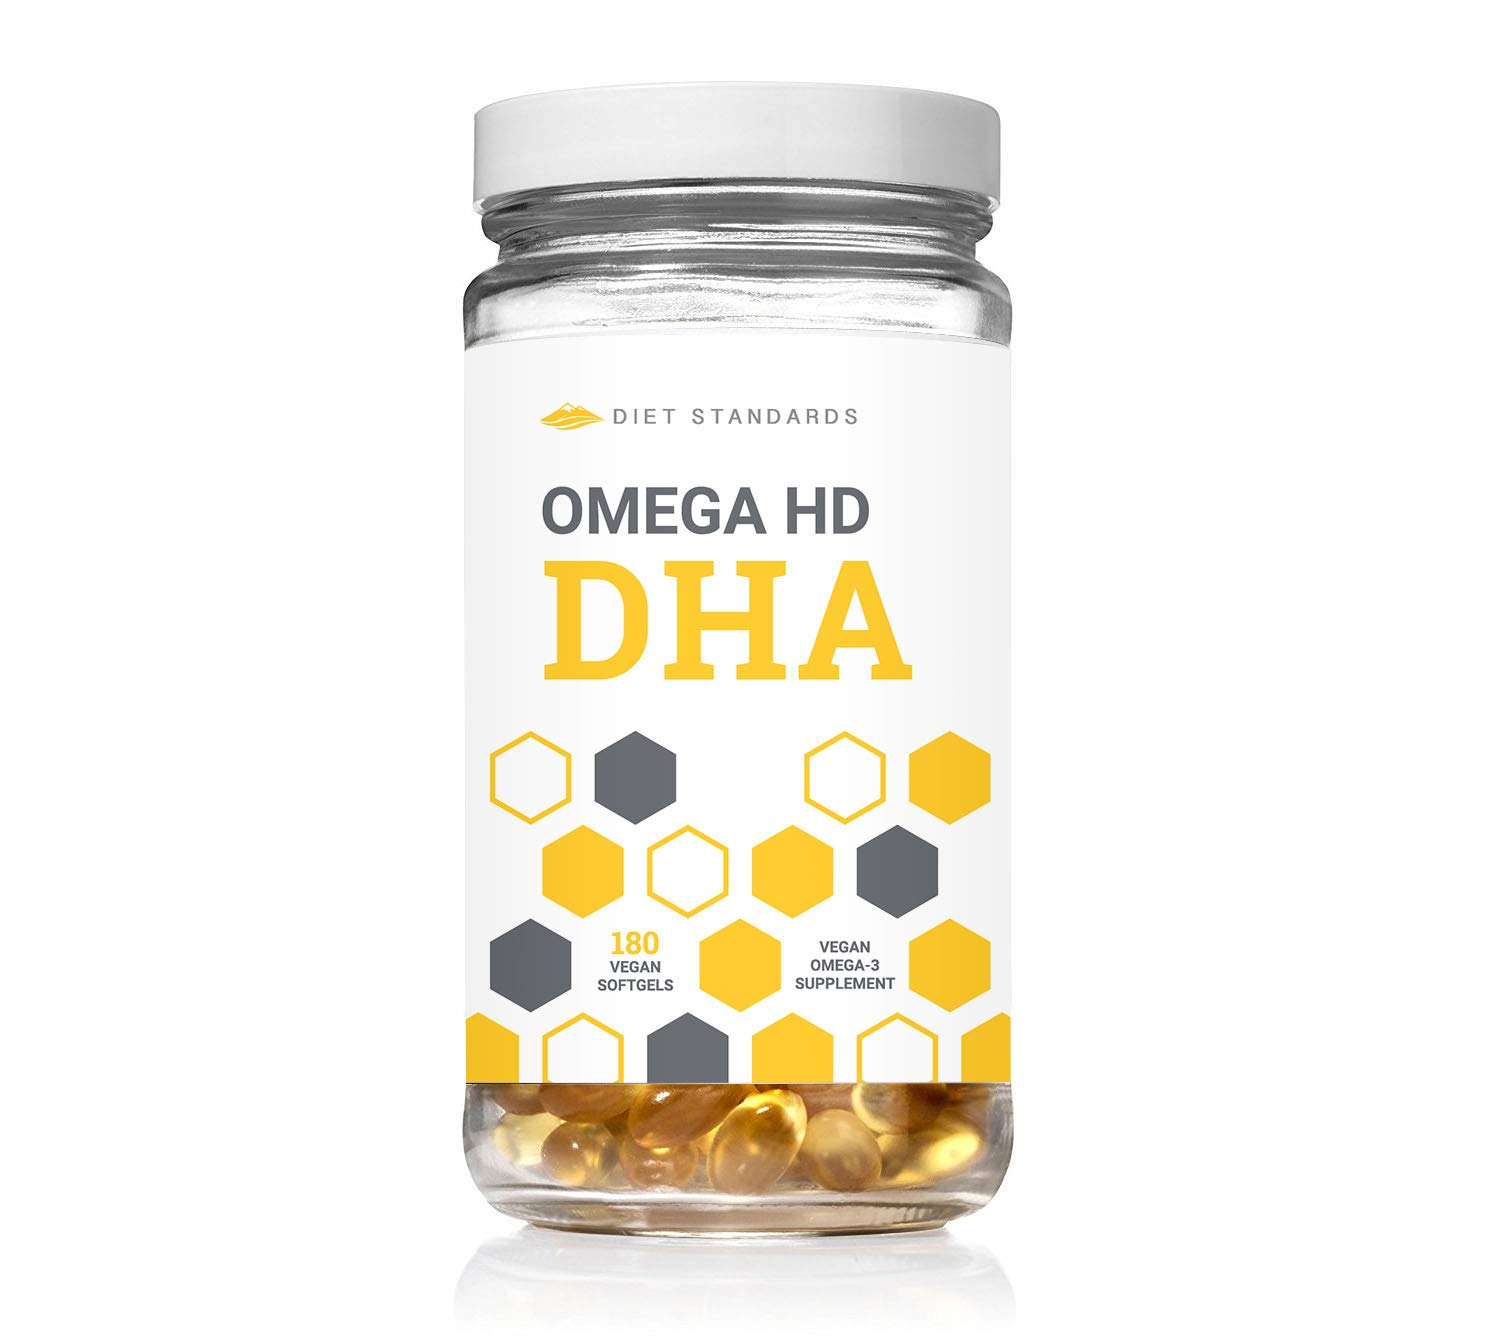 Diet Standards OmegaHD DHA Supplement (Formerly AminoHD BCAA) - 450 mg DHA Vitamin (Omega 3 Supplements) - 100% Plant-Based with Algae Oil - 180 Vegan Softgels